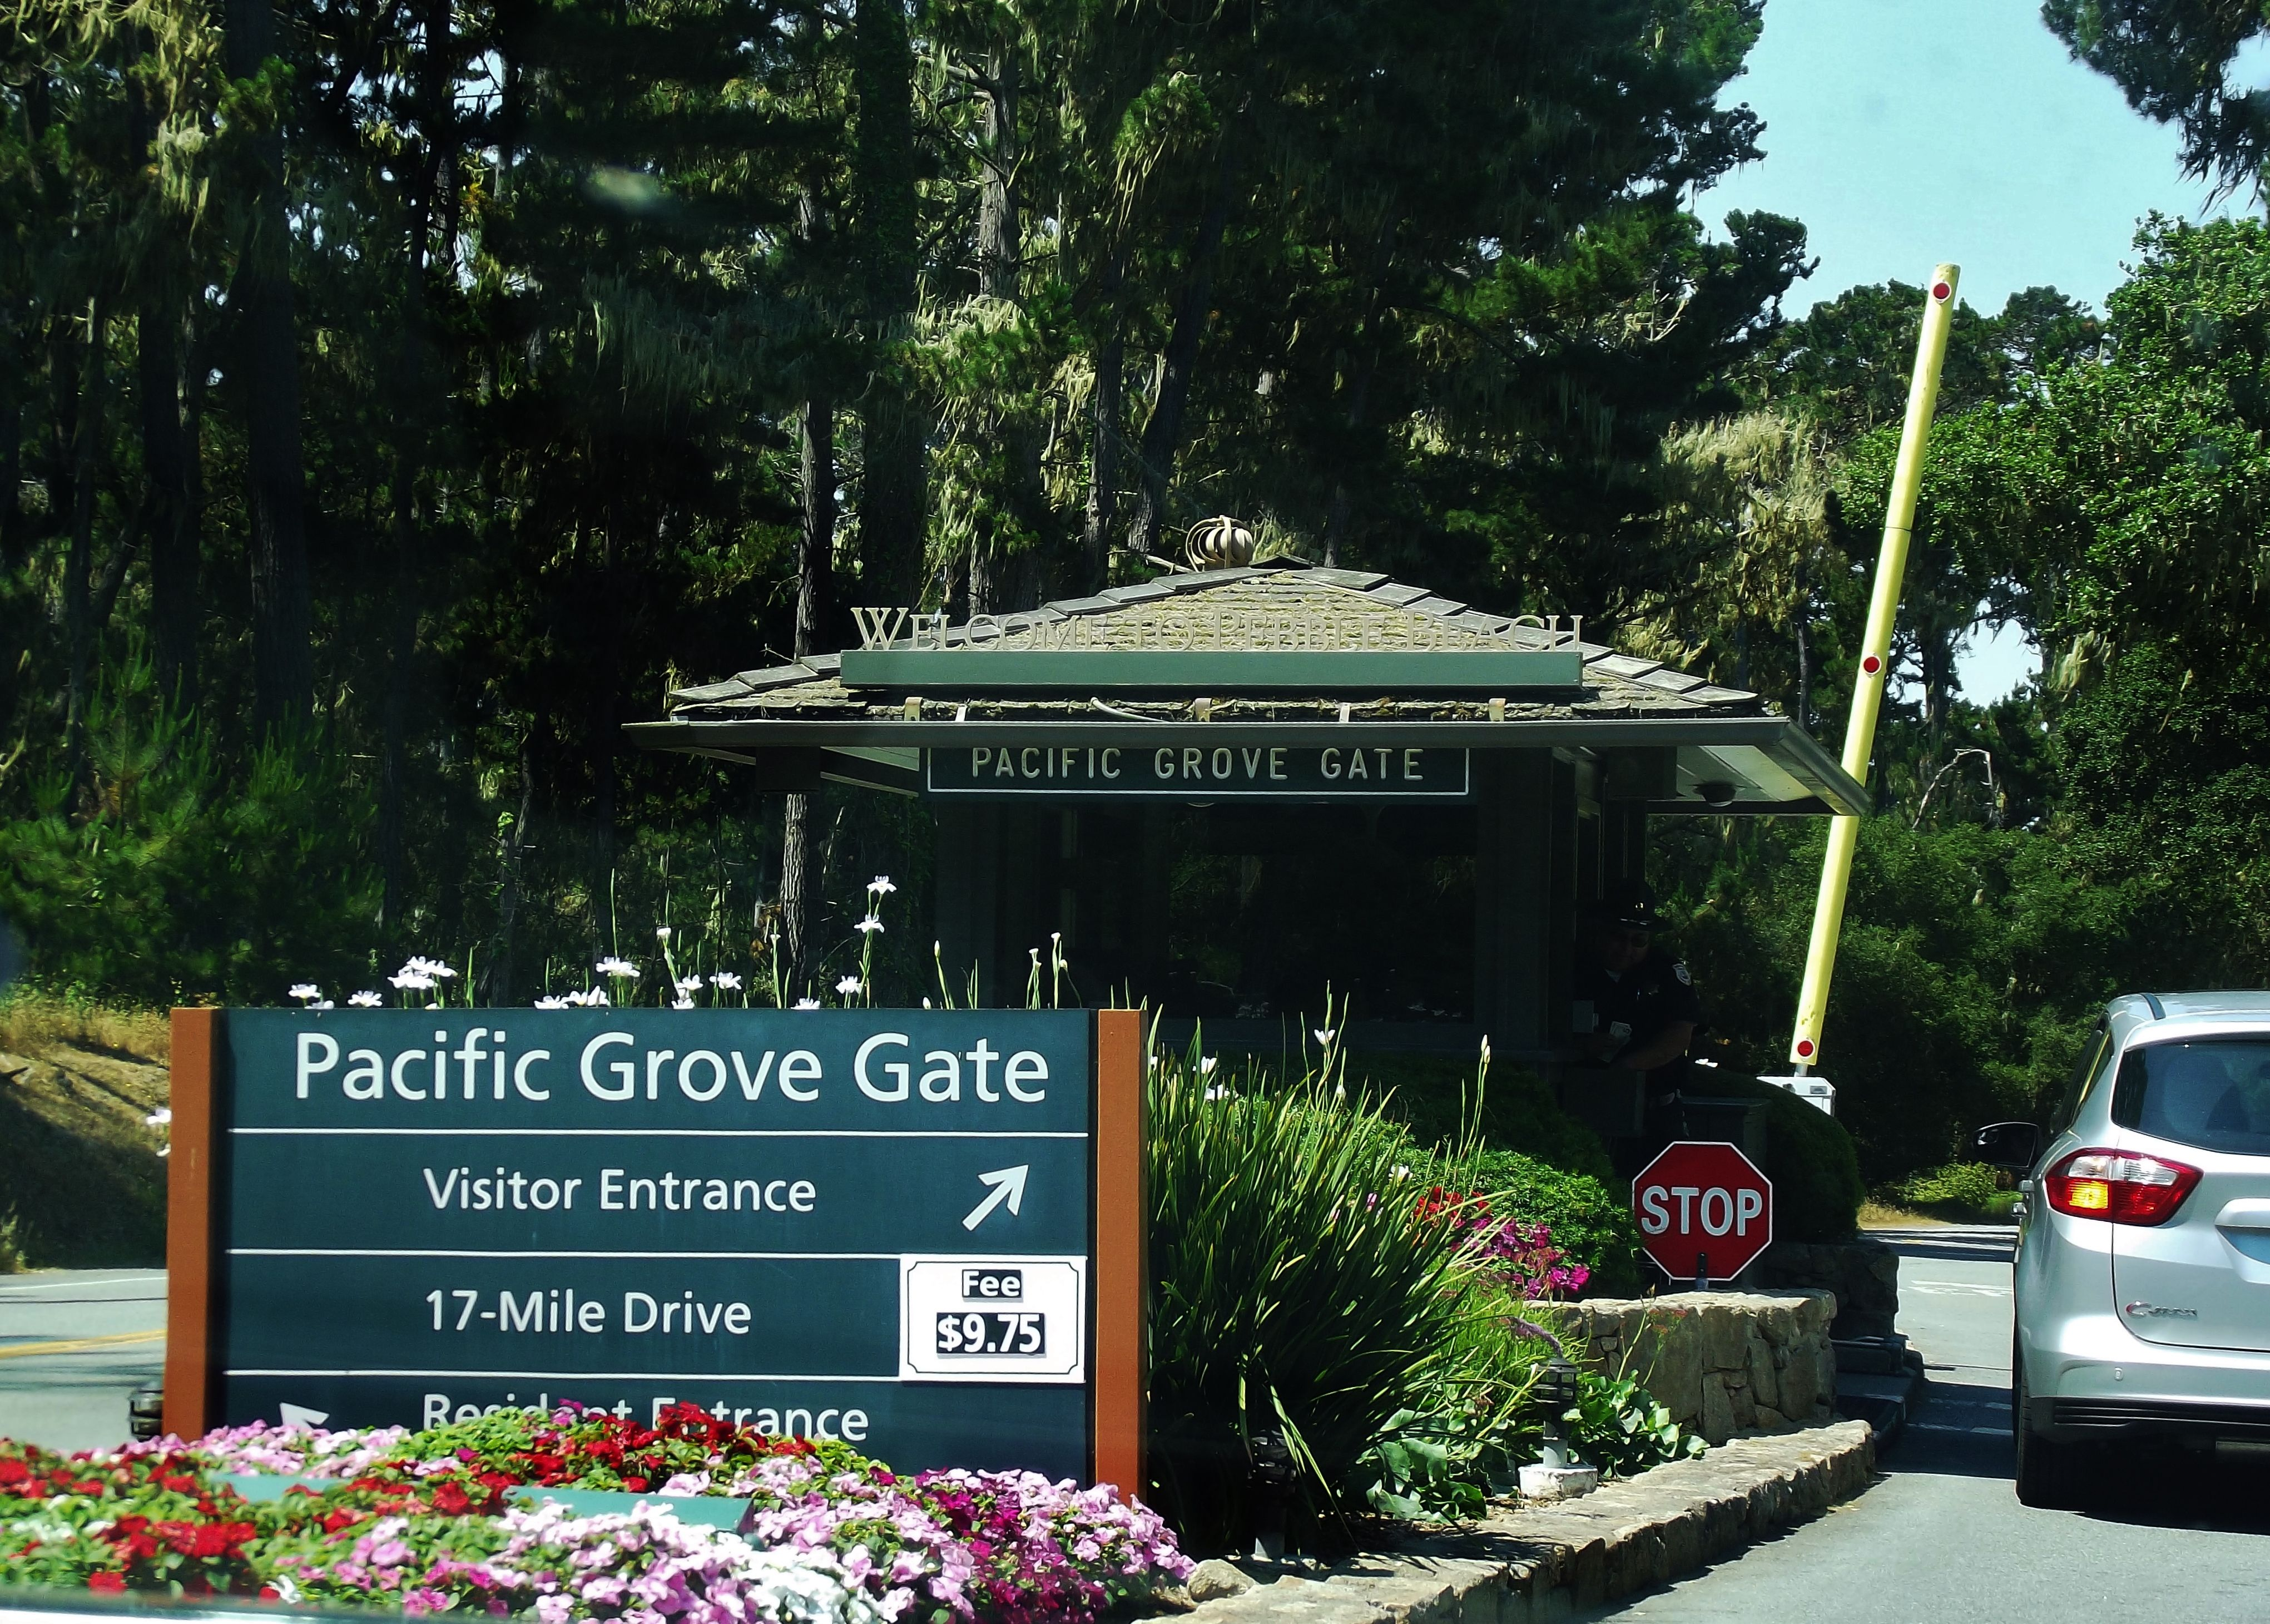 ca cottage pacific motels gallery grove suite buttefly lodge room hotels butterfly master family inns cottages inn lighthouse photo and